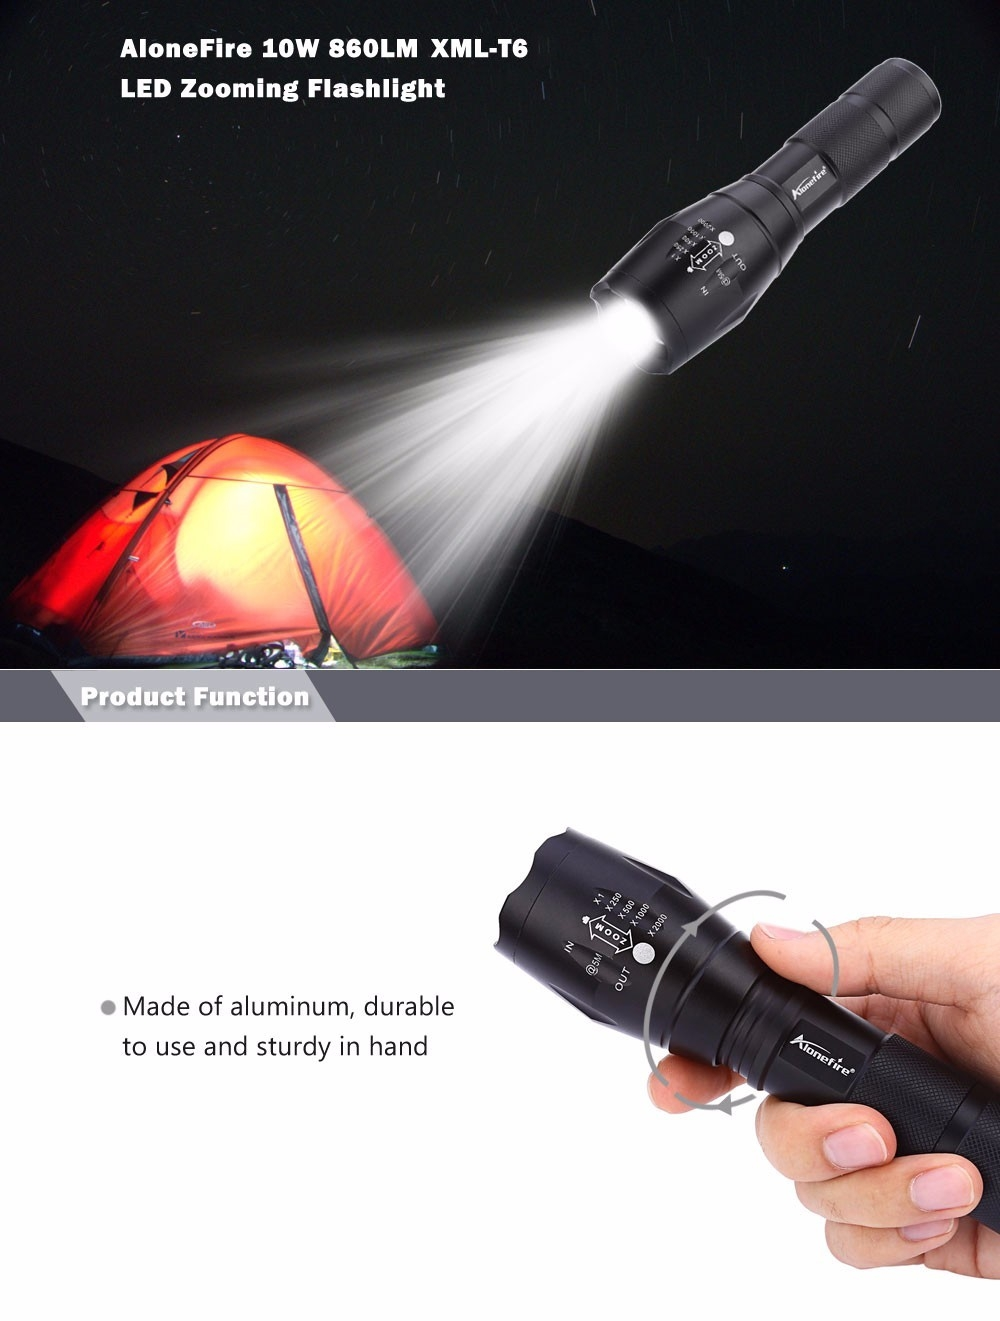 AloneFire E17 A100 3.7V 10W 860LM XML-T6 LED Zooming Flashlight 5 Modes Water Resistant Searchlight